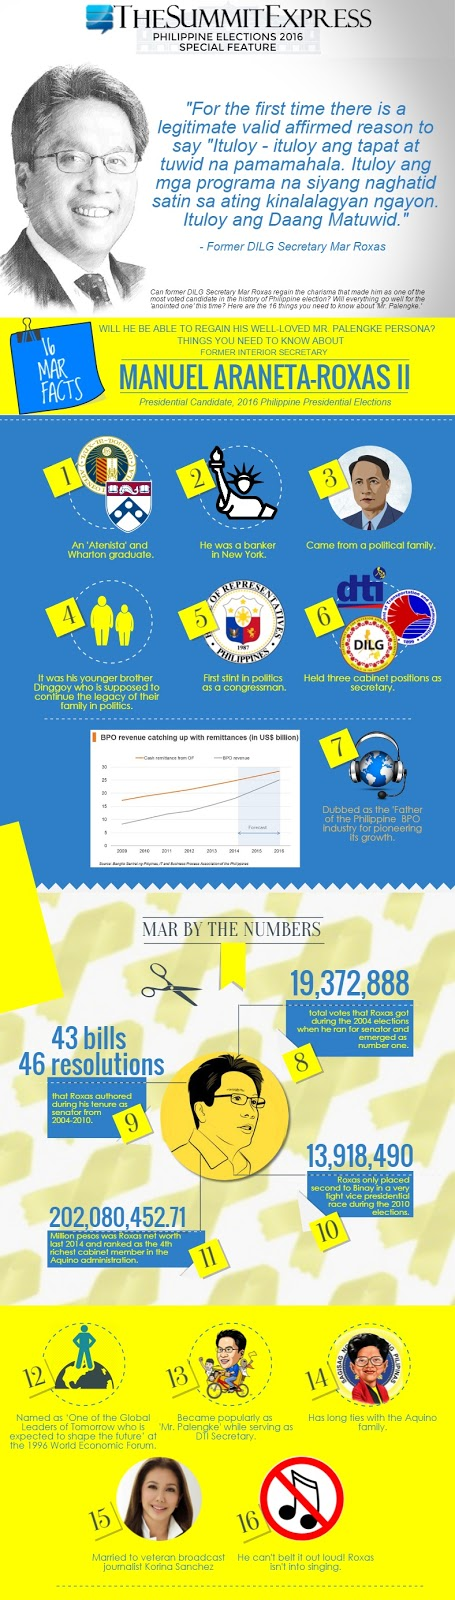 16 Facts about 2016 Presidential Candidate Mar Roxas